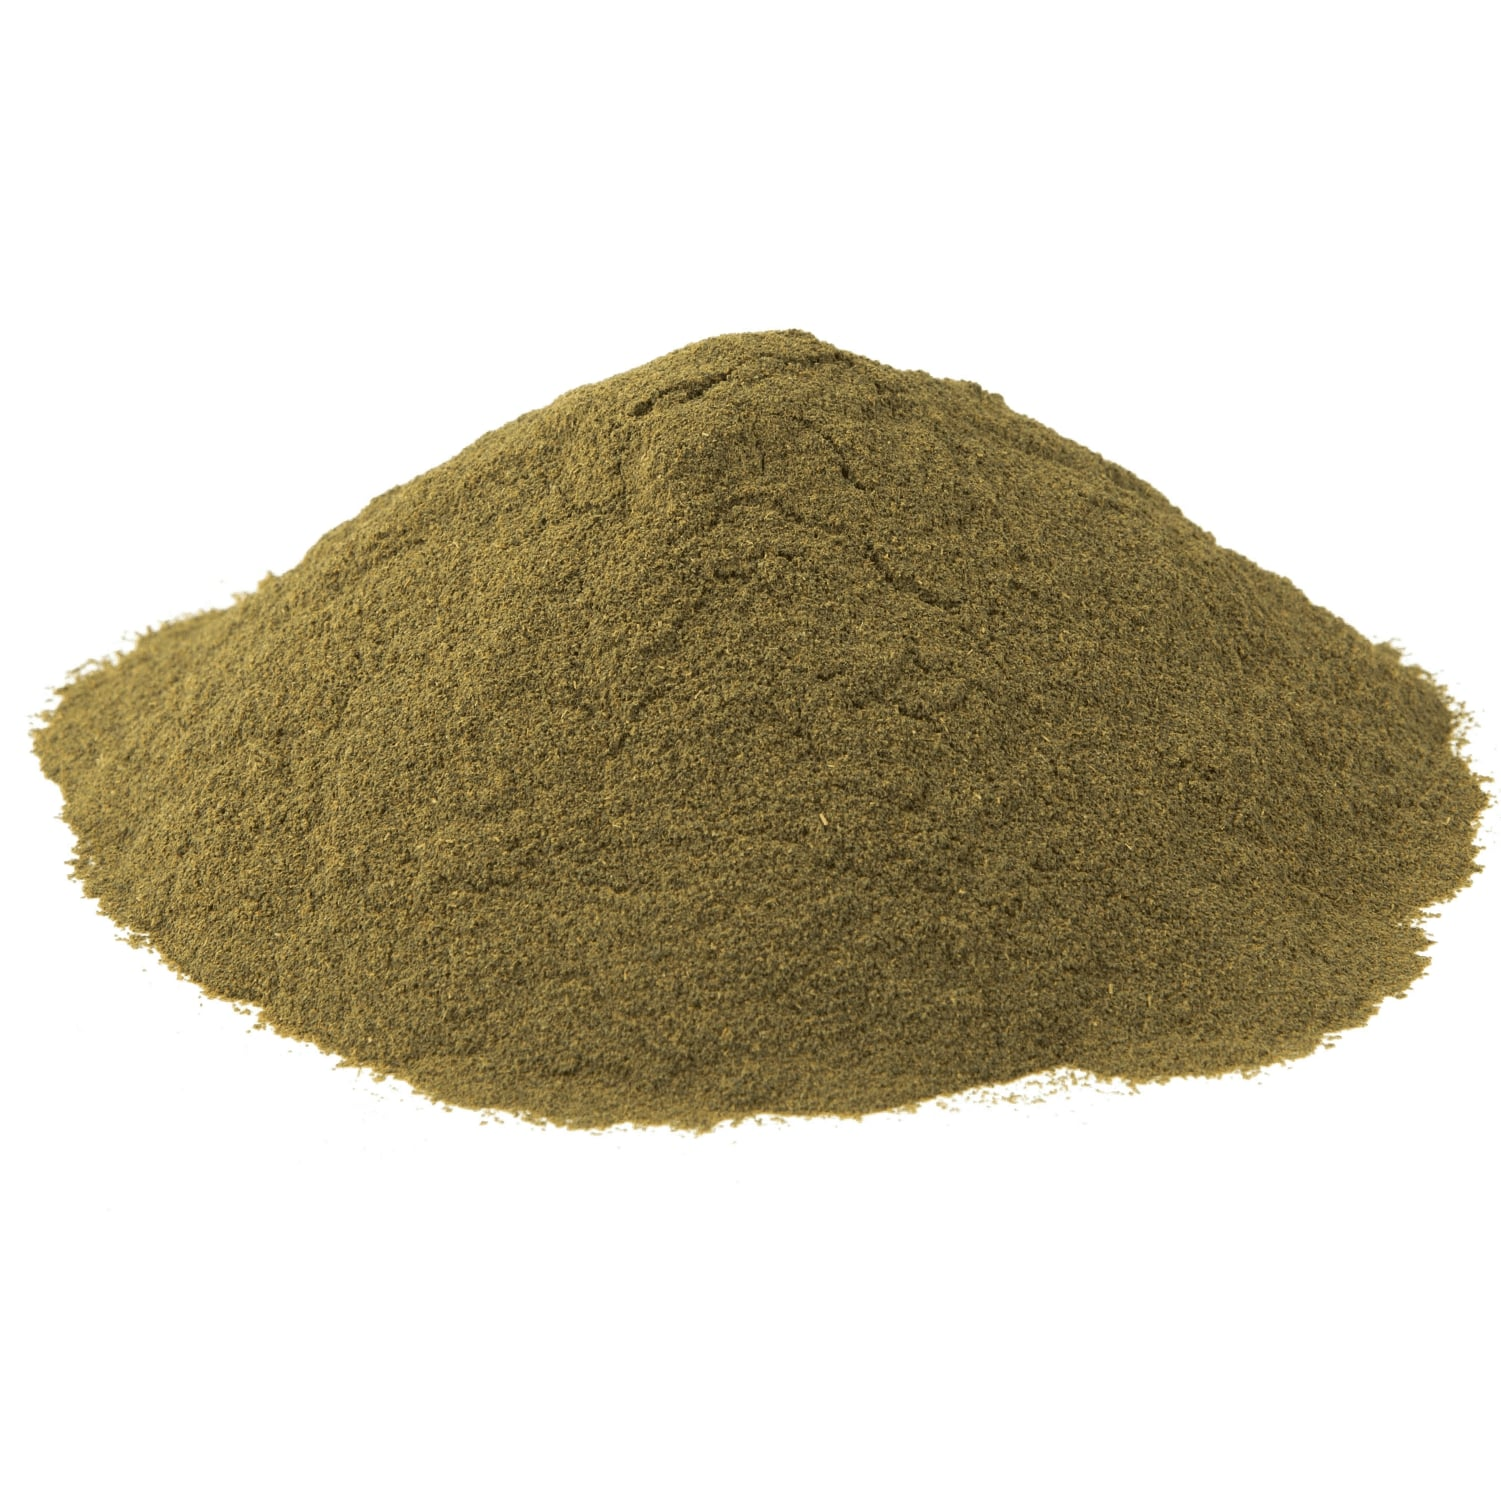 Red Indo Kratom for Sale